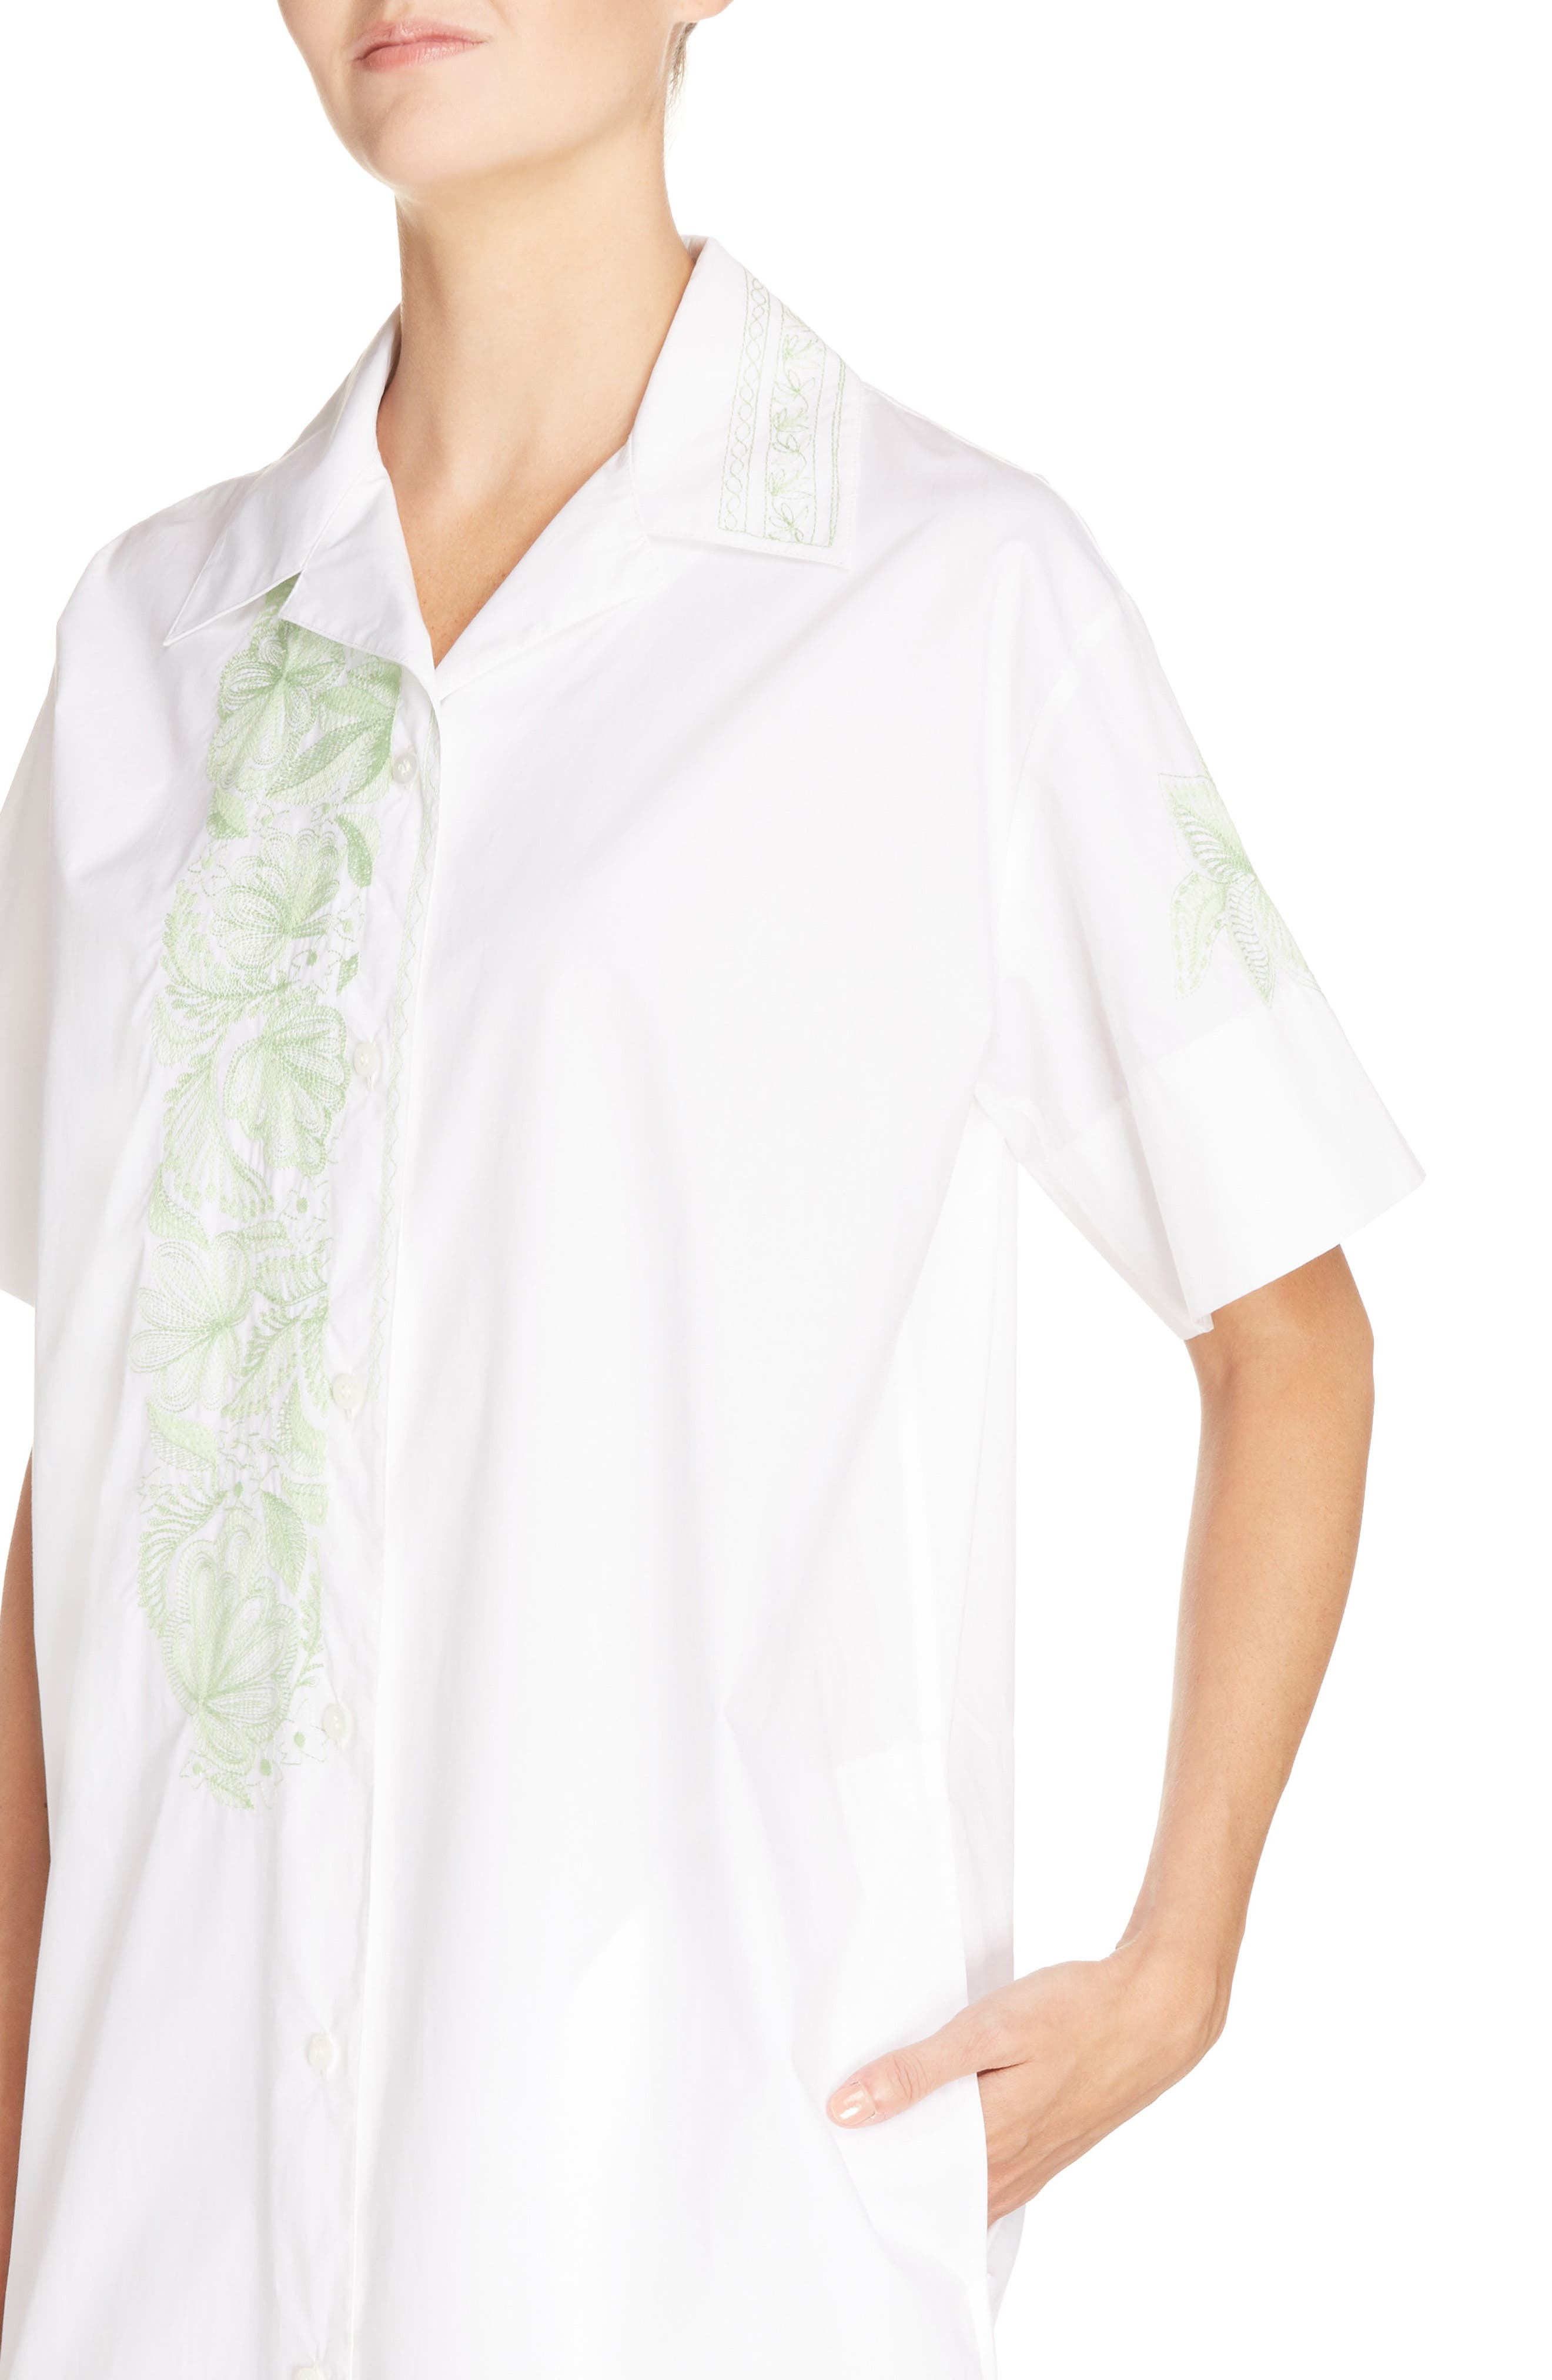 Jusso Embroidered Shirtdress,                             Alternate thumbnail 4, color,                             100